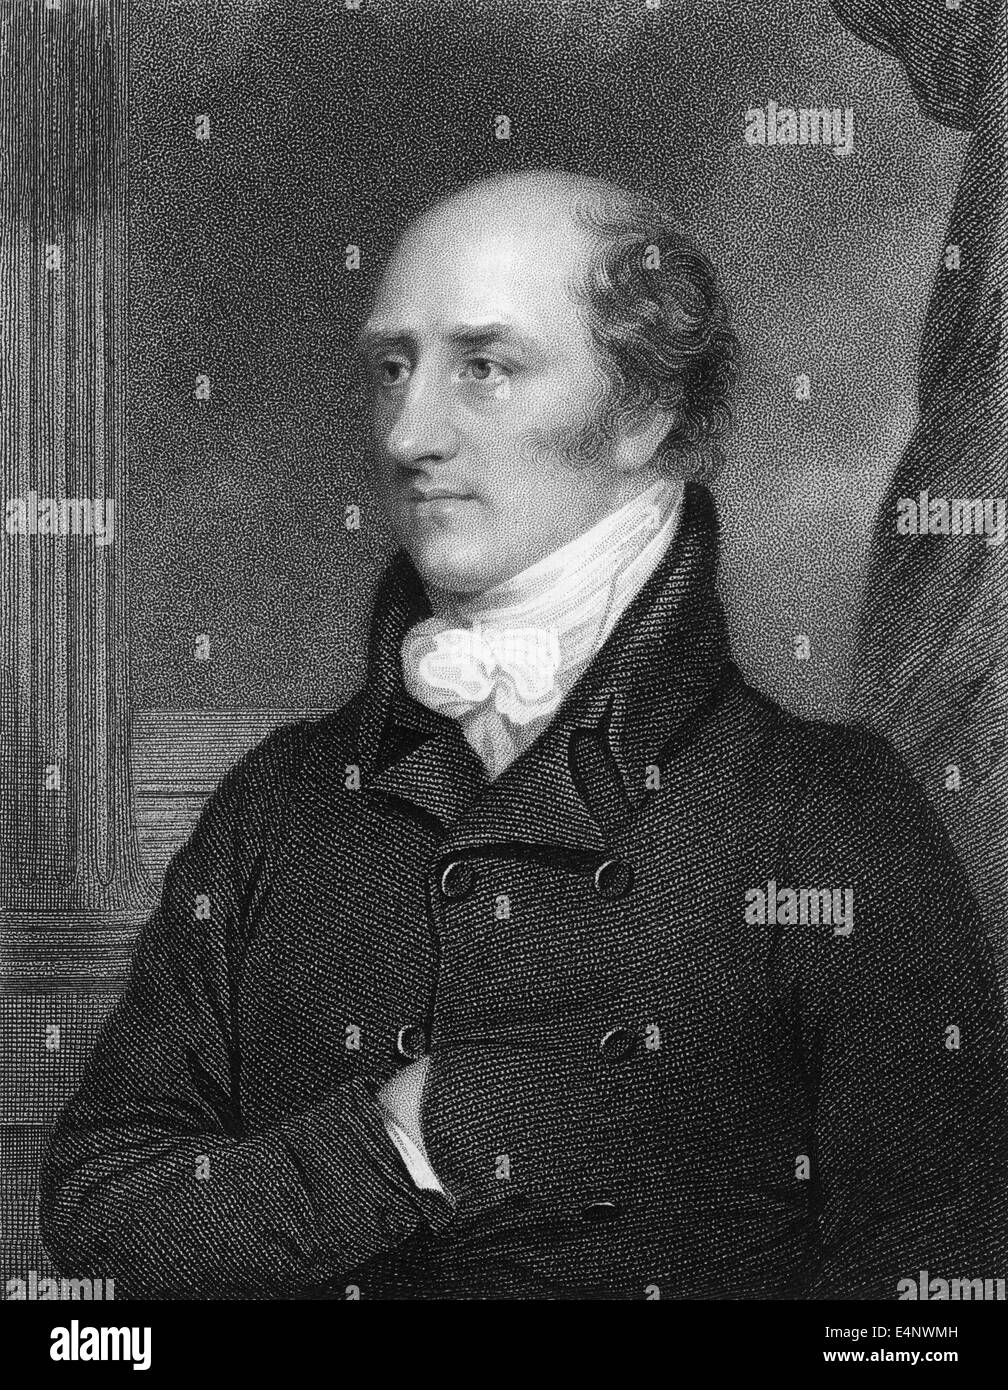 George Canning, 1770 - 1827, a British politician, foreign minister and prime minister - Stock Image